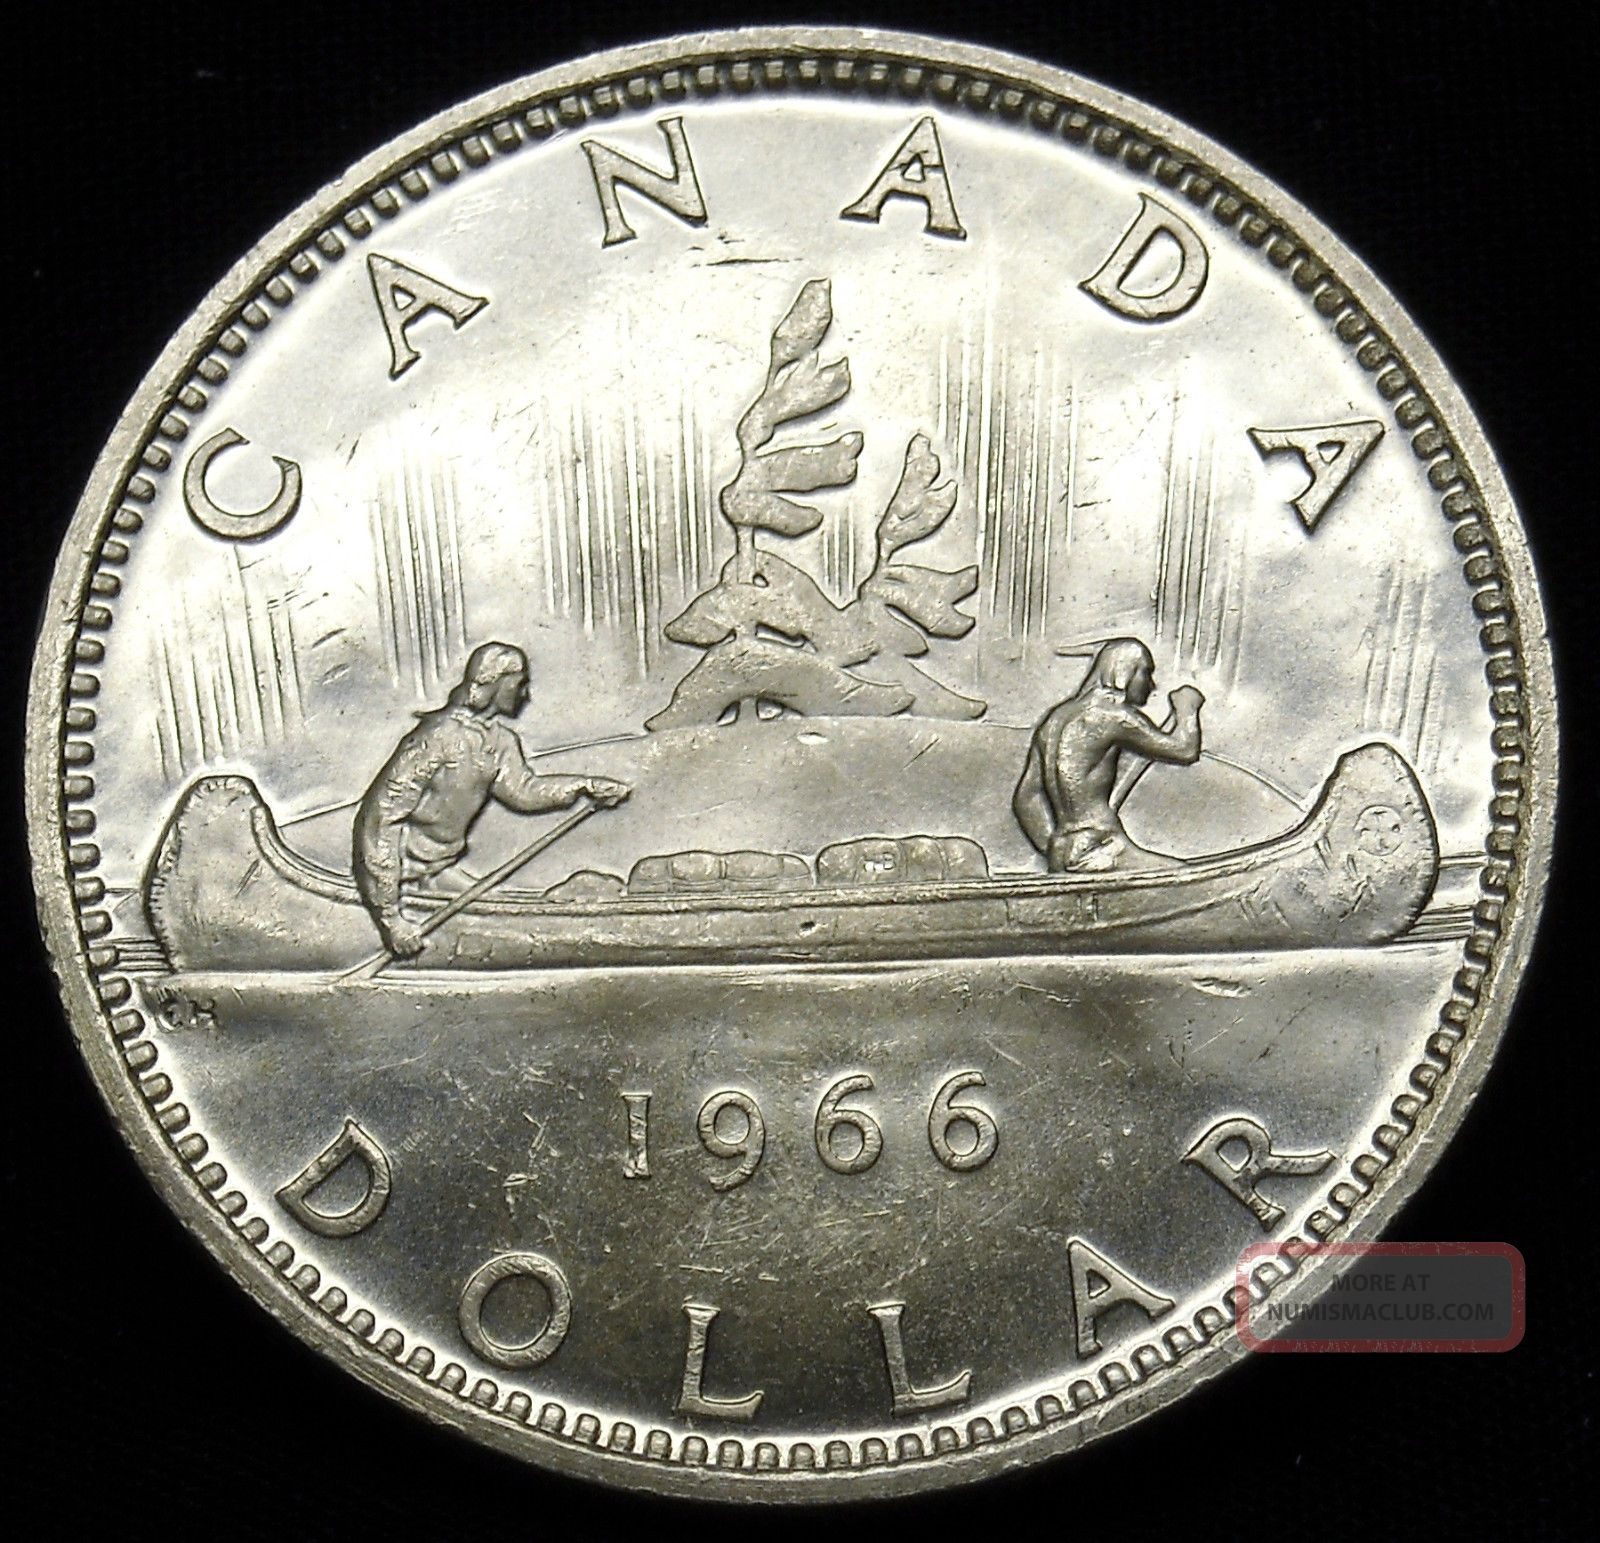 1966 Canadian Silver Dollar.  600 Actual Silver Weight As Pictured S&h H551 Coins: Canada photo